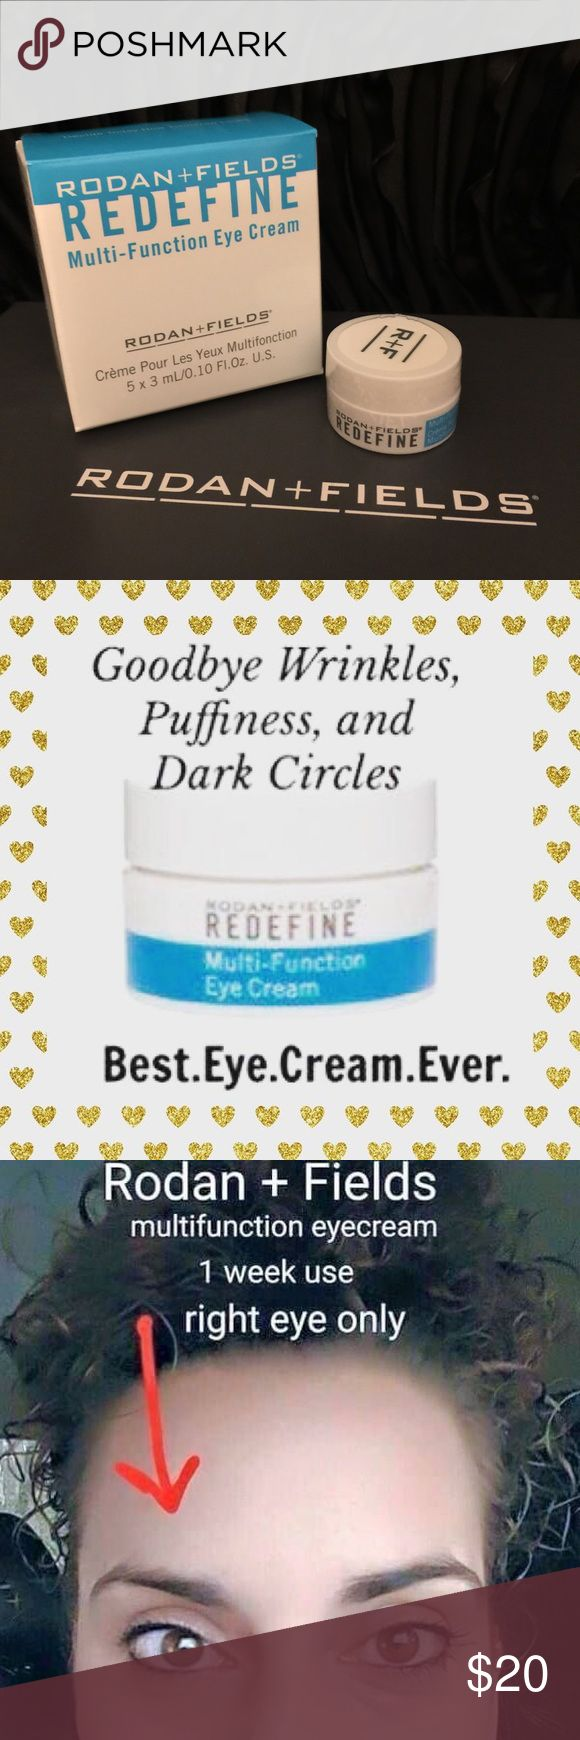 ✨Rodan+Fields MINI MultiFunction Eye Cream✨ This is for 1 of 10 MINIS that I have Tired of waking up to dark circles and puffiness under the eyes? Look on the bright side this winter and start using REDEFINE Multi-Function Eye Cream. It's packed with powerful anti-aging peptides to help minimize the appearance of crow's feet and puffiness, while brightening up the eye area  Rodan+Fields Makeup